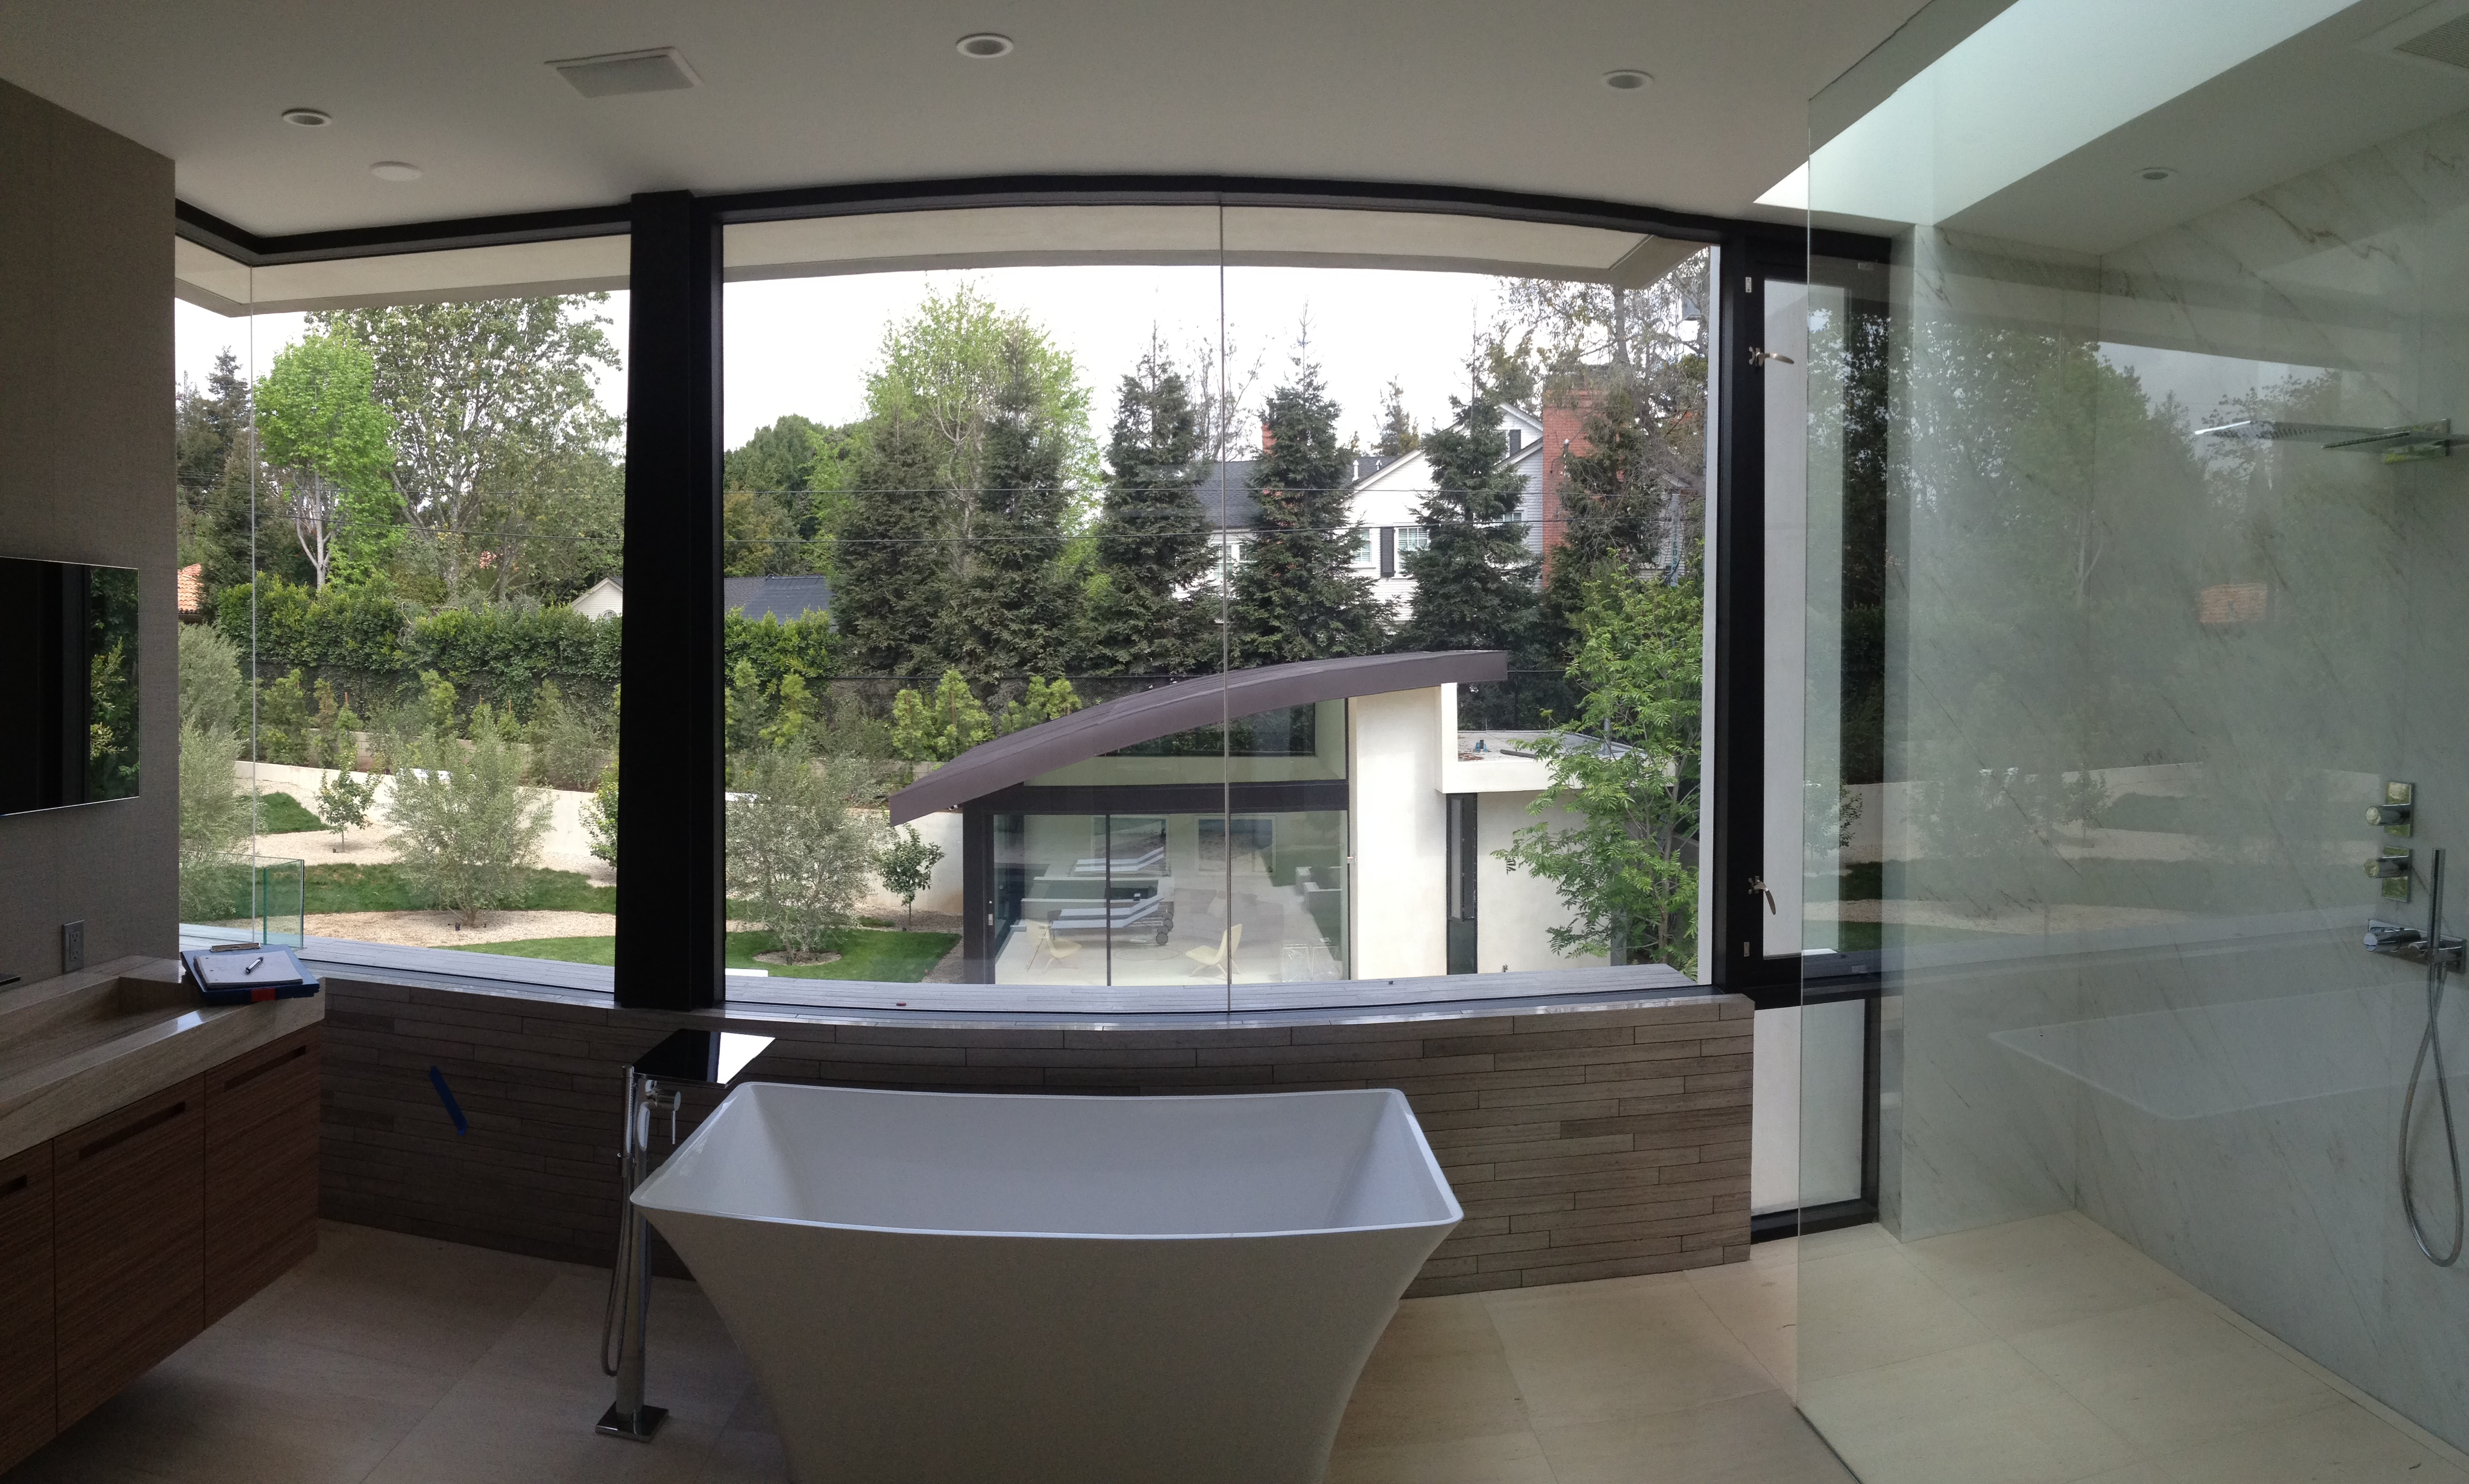 Custom Bath - Select Window Films, Inc.